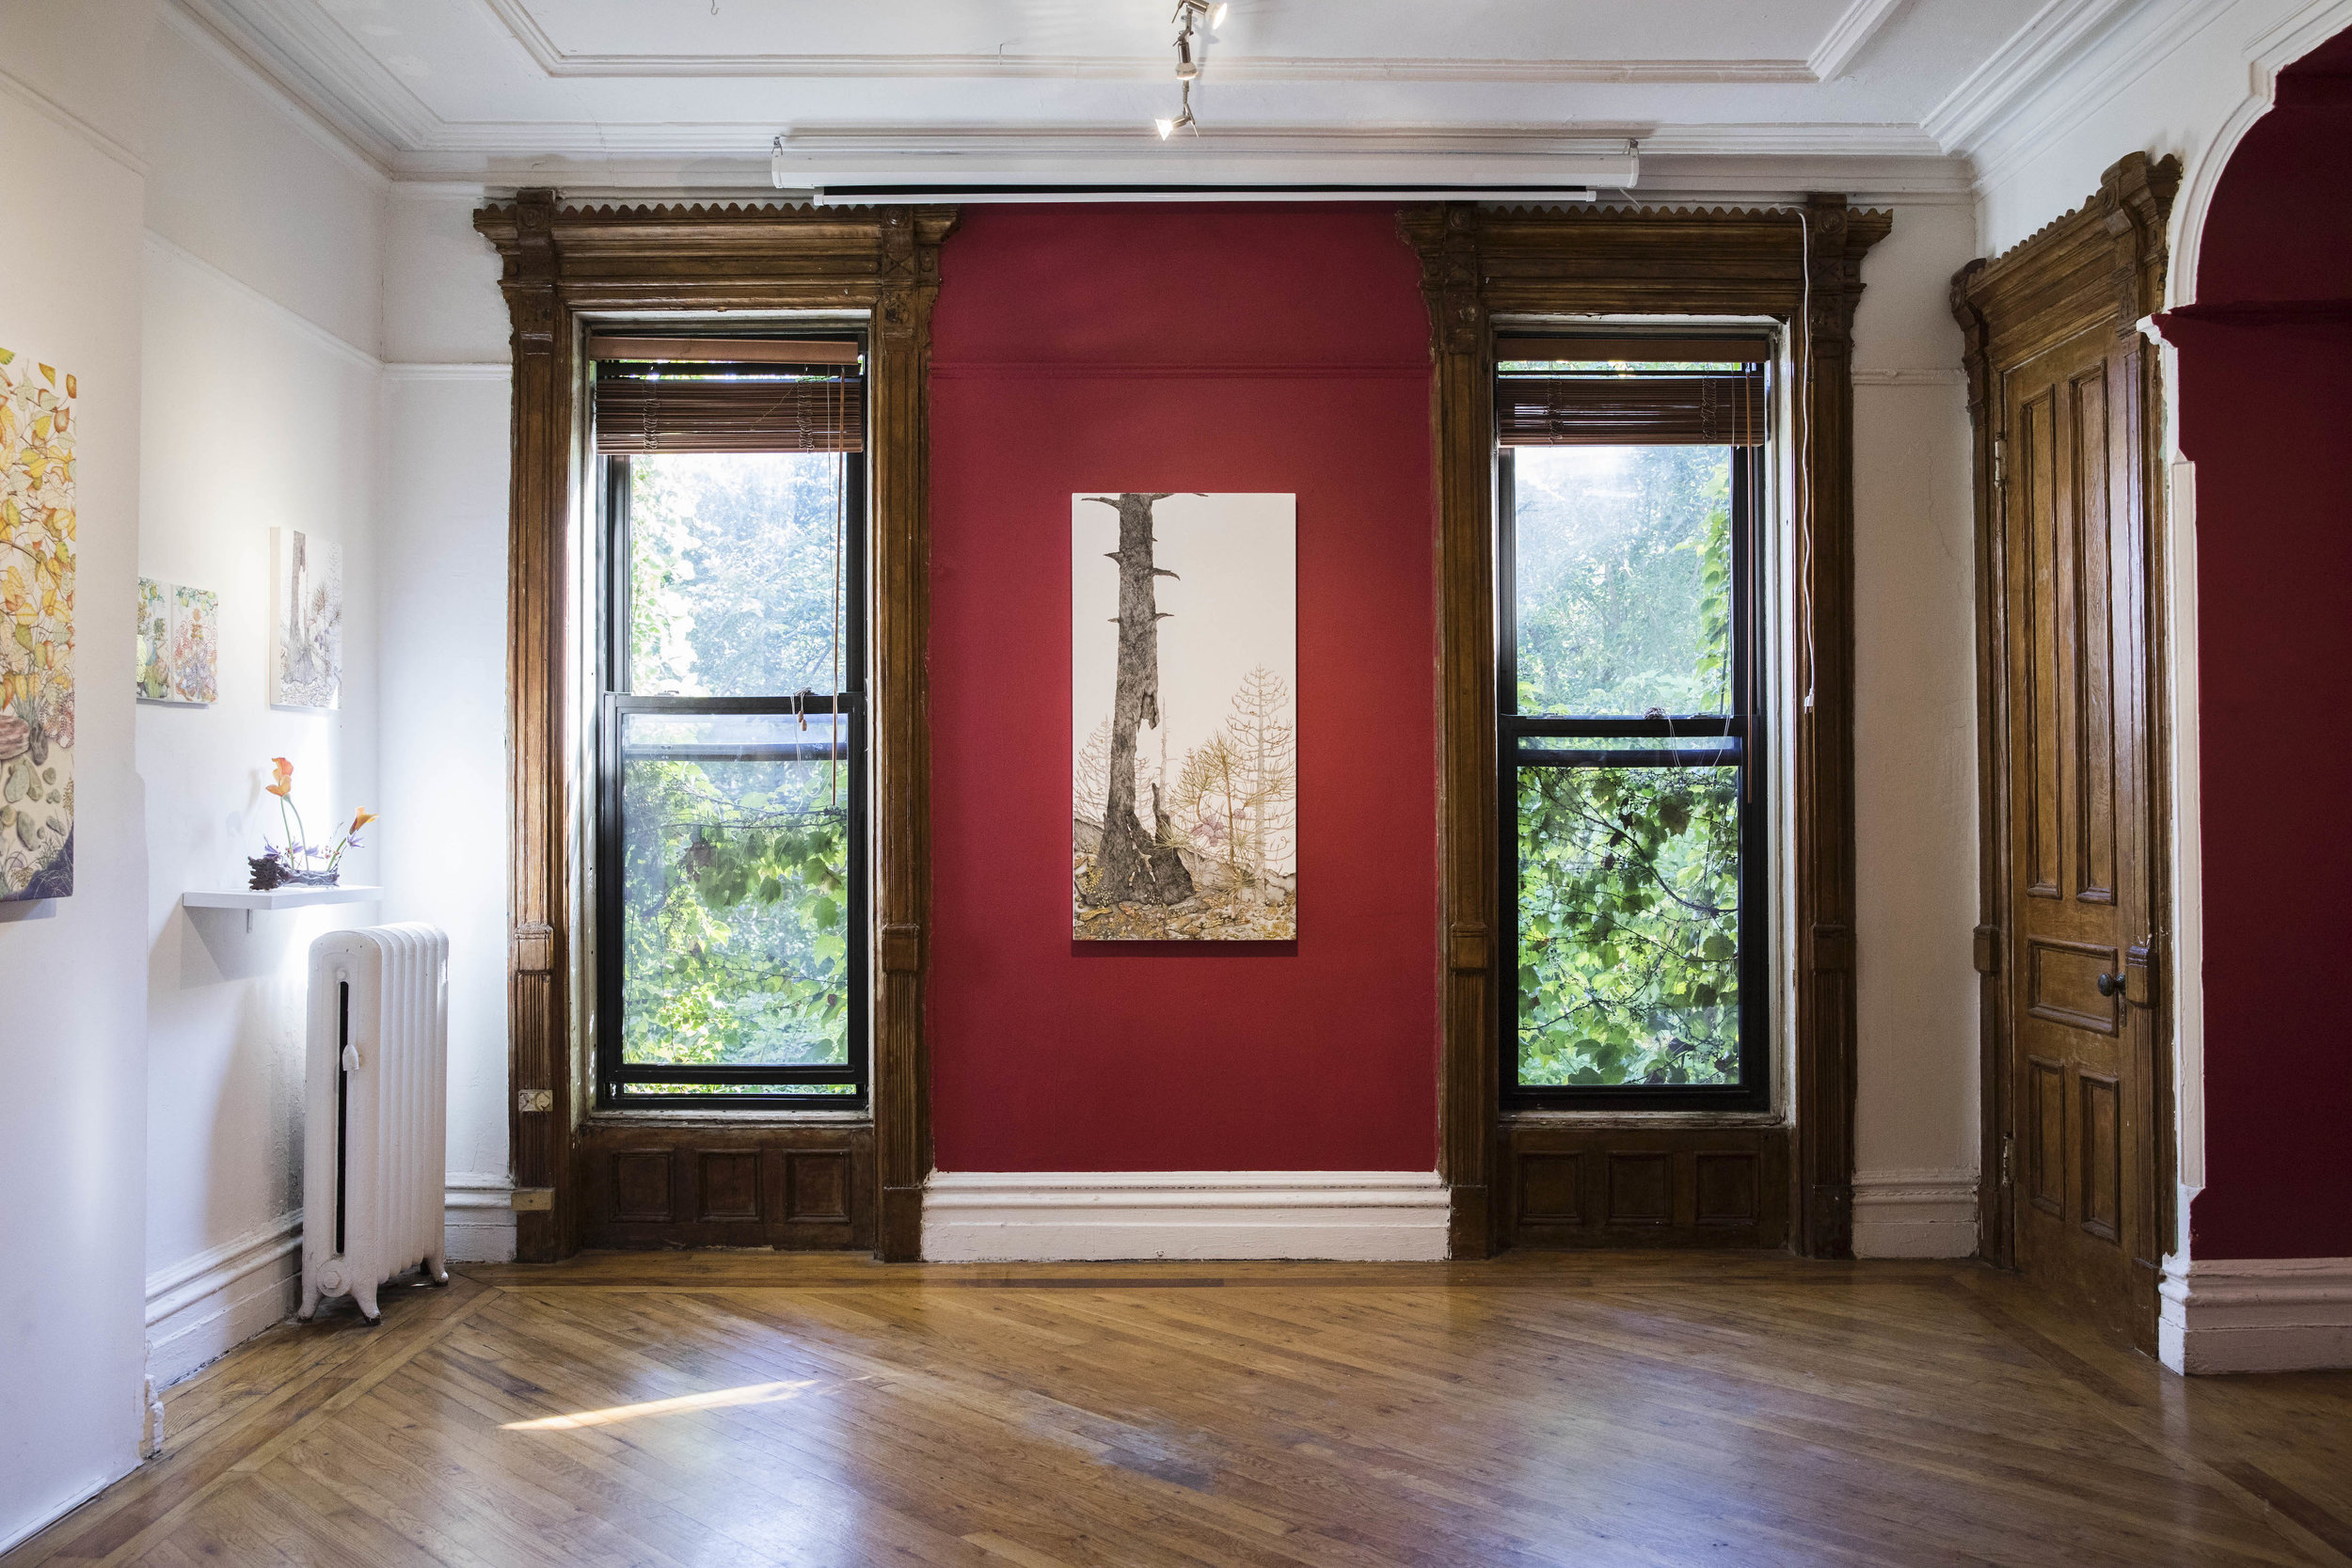 Installation view of  Micheal Eade: past is present is future , photo credit to Nadia Peichao Lin, © Micheal Eade, Courtesy Fou Gallery.